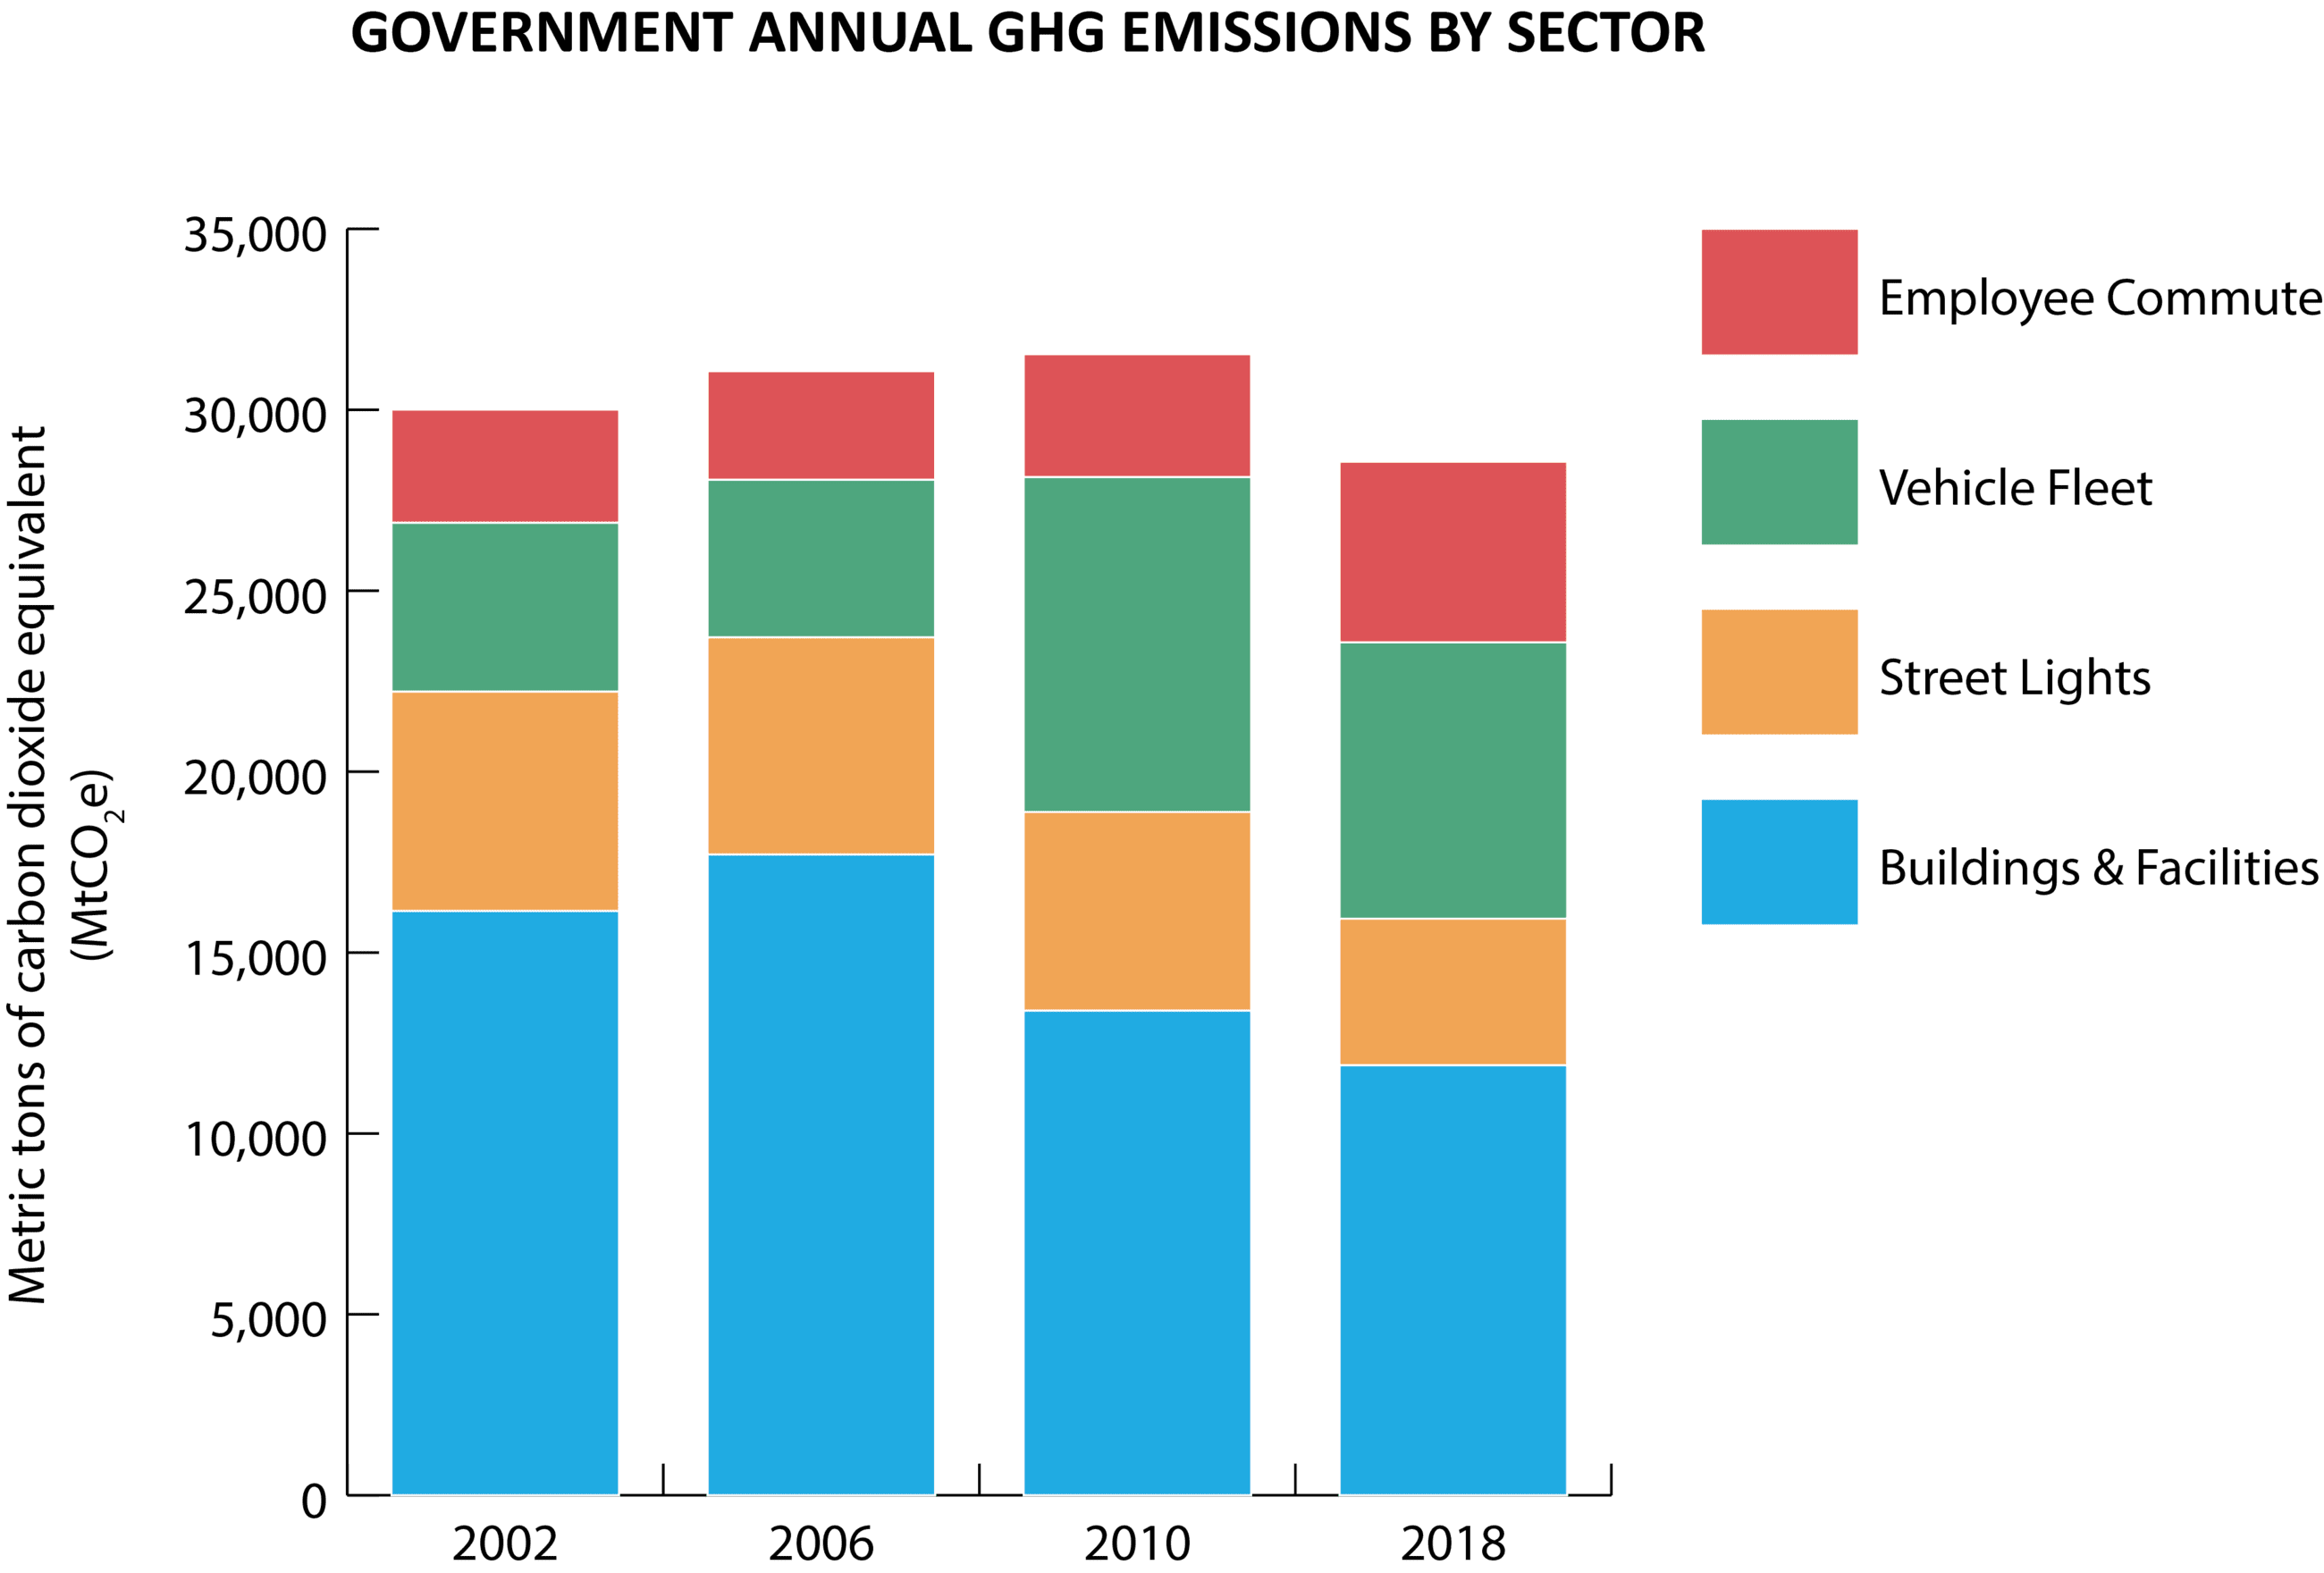 Municipal Annual GHG Emissions by Sector